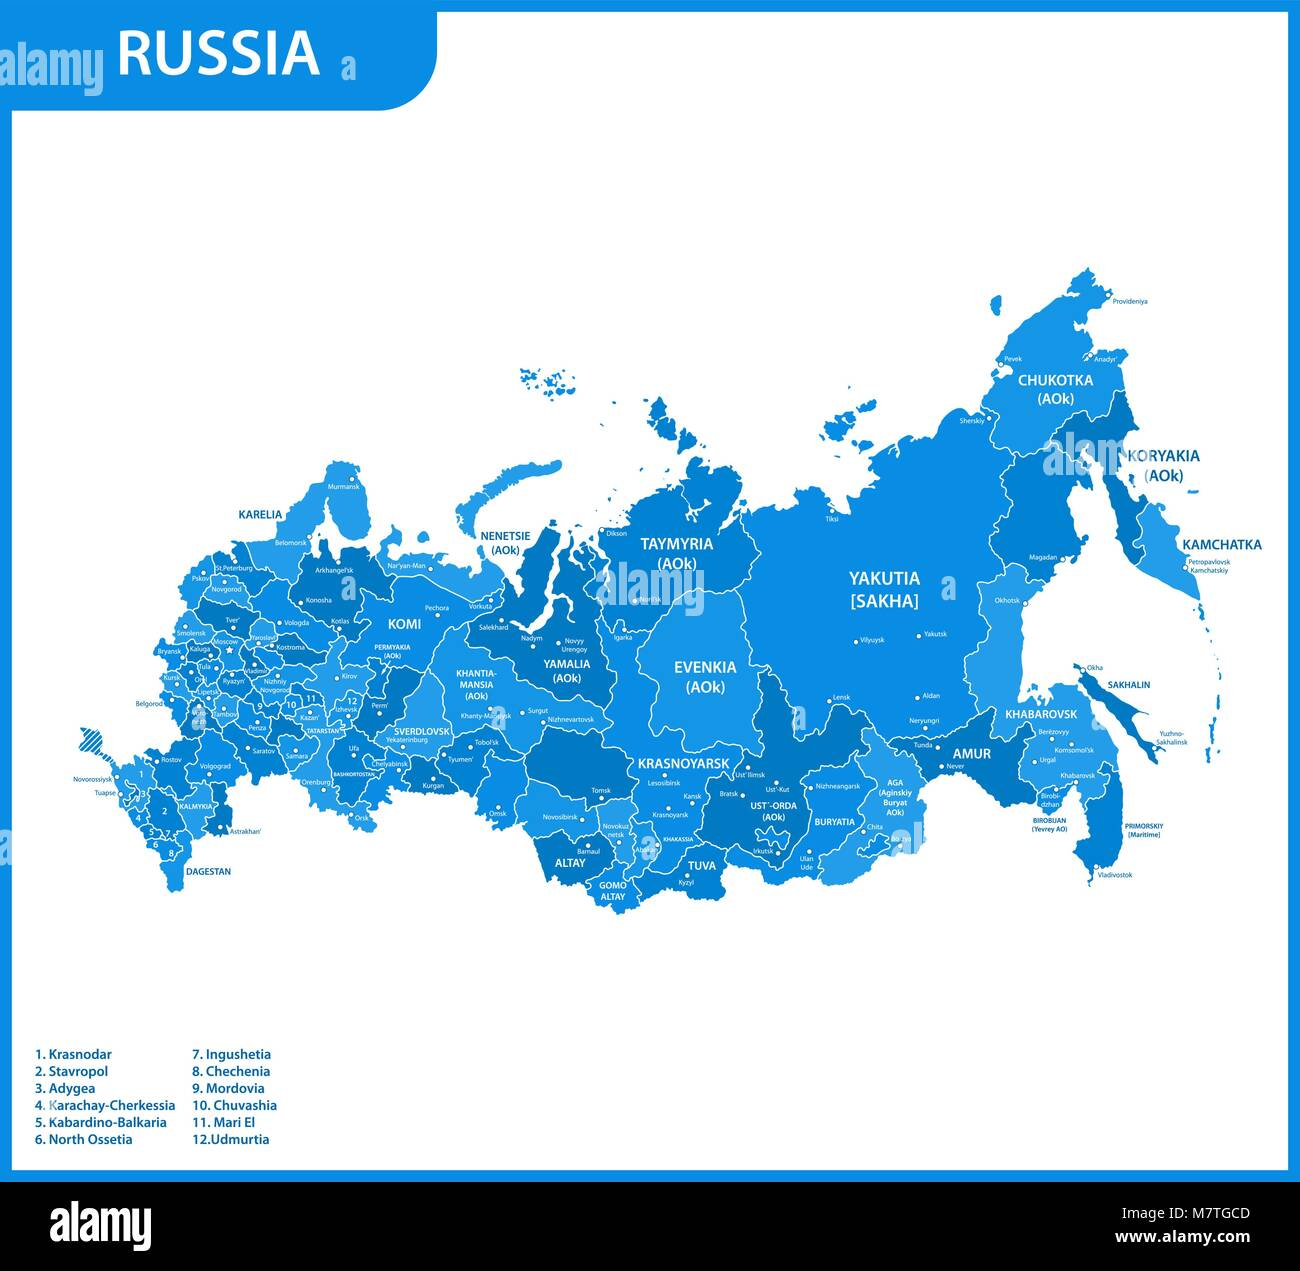 The detailed map of the Russia with regions or states and cities, capitals. Russian Federation - Stock Image